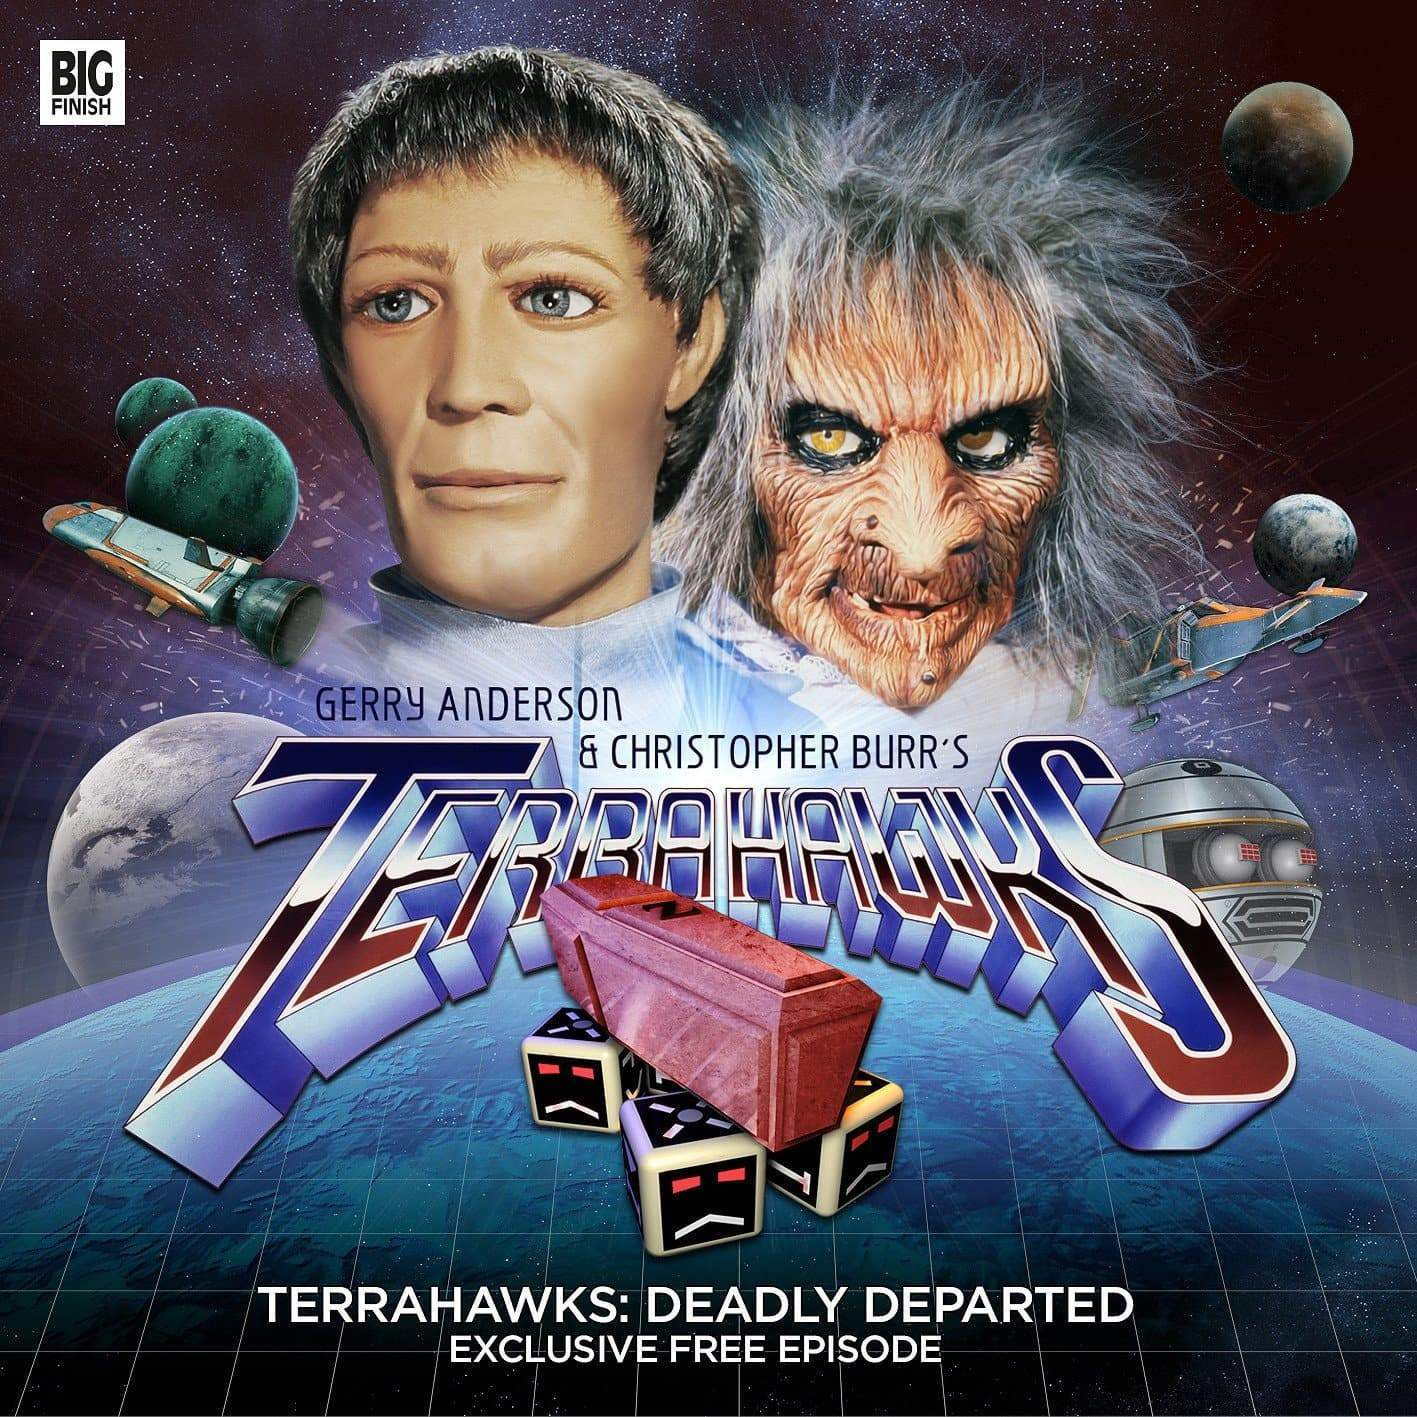 Deadly Departed - Terrahawks Full Cast Audio Episode [FREE DOWNLOAD] - The Gerry Anderson Store